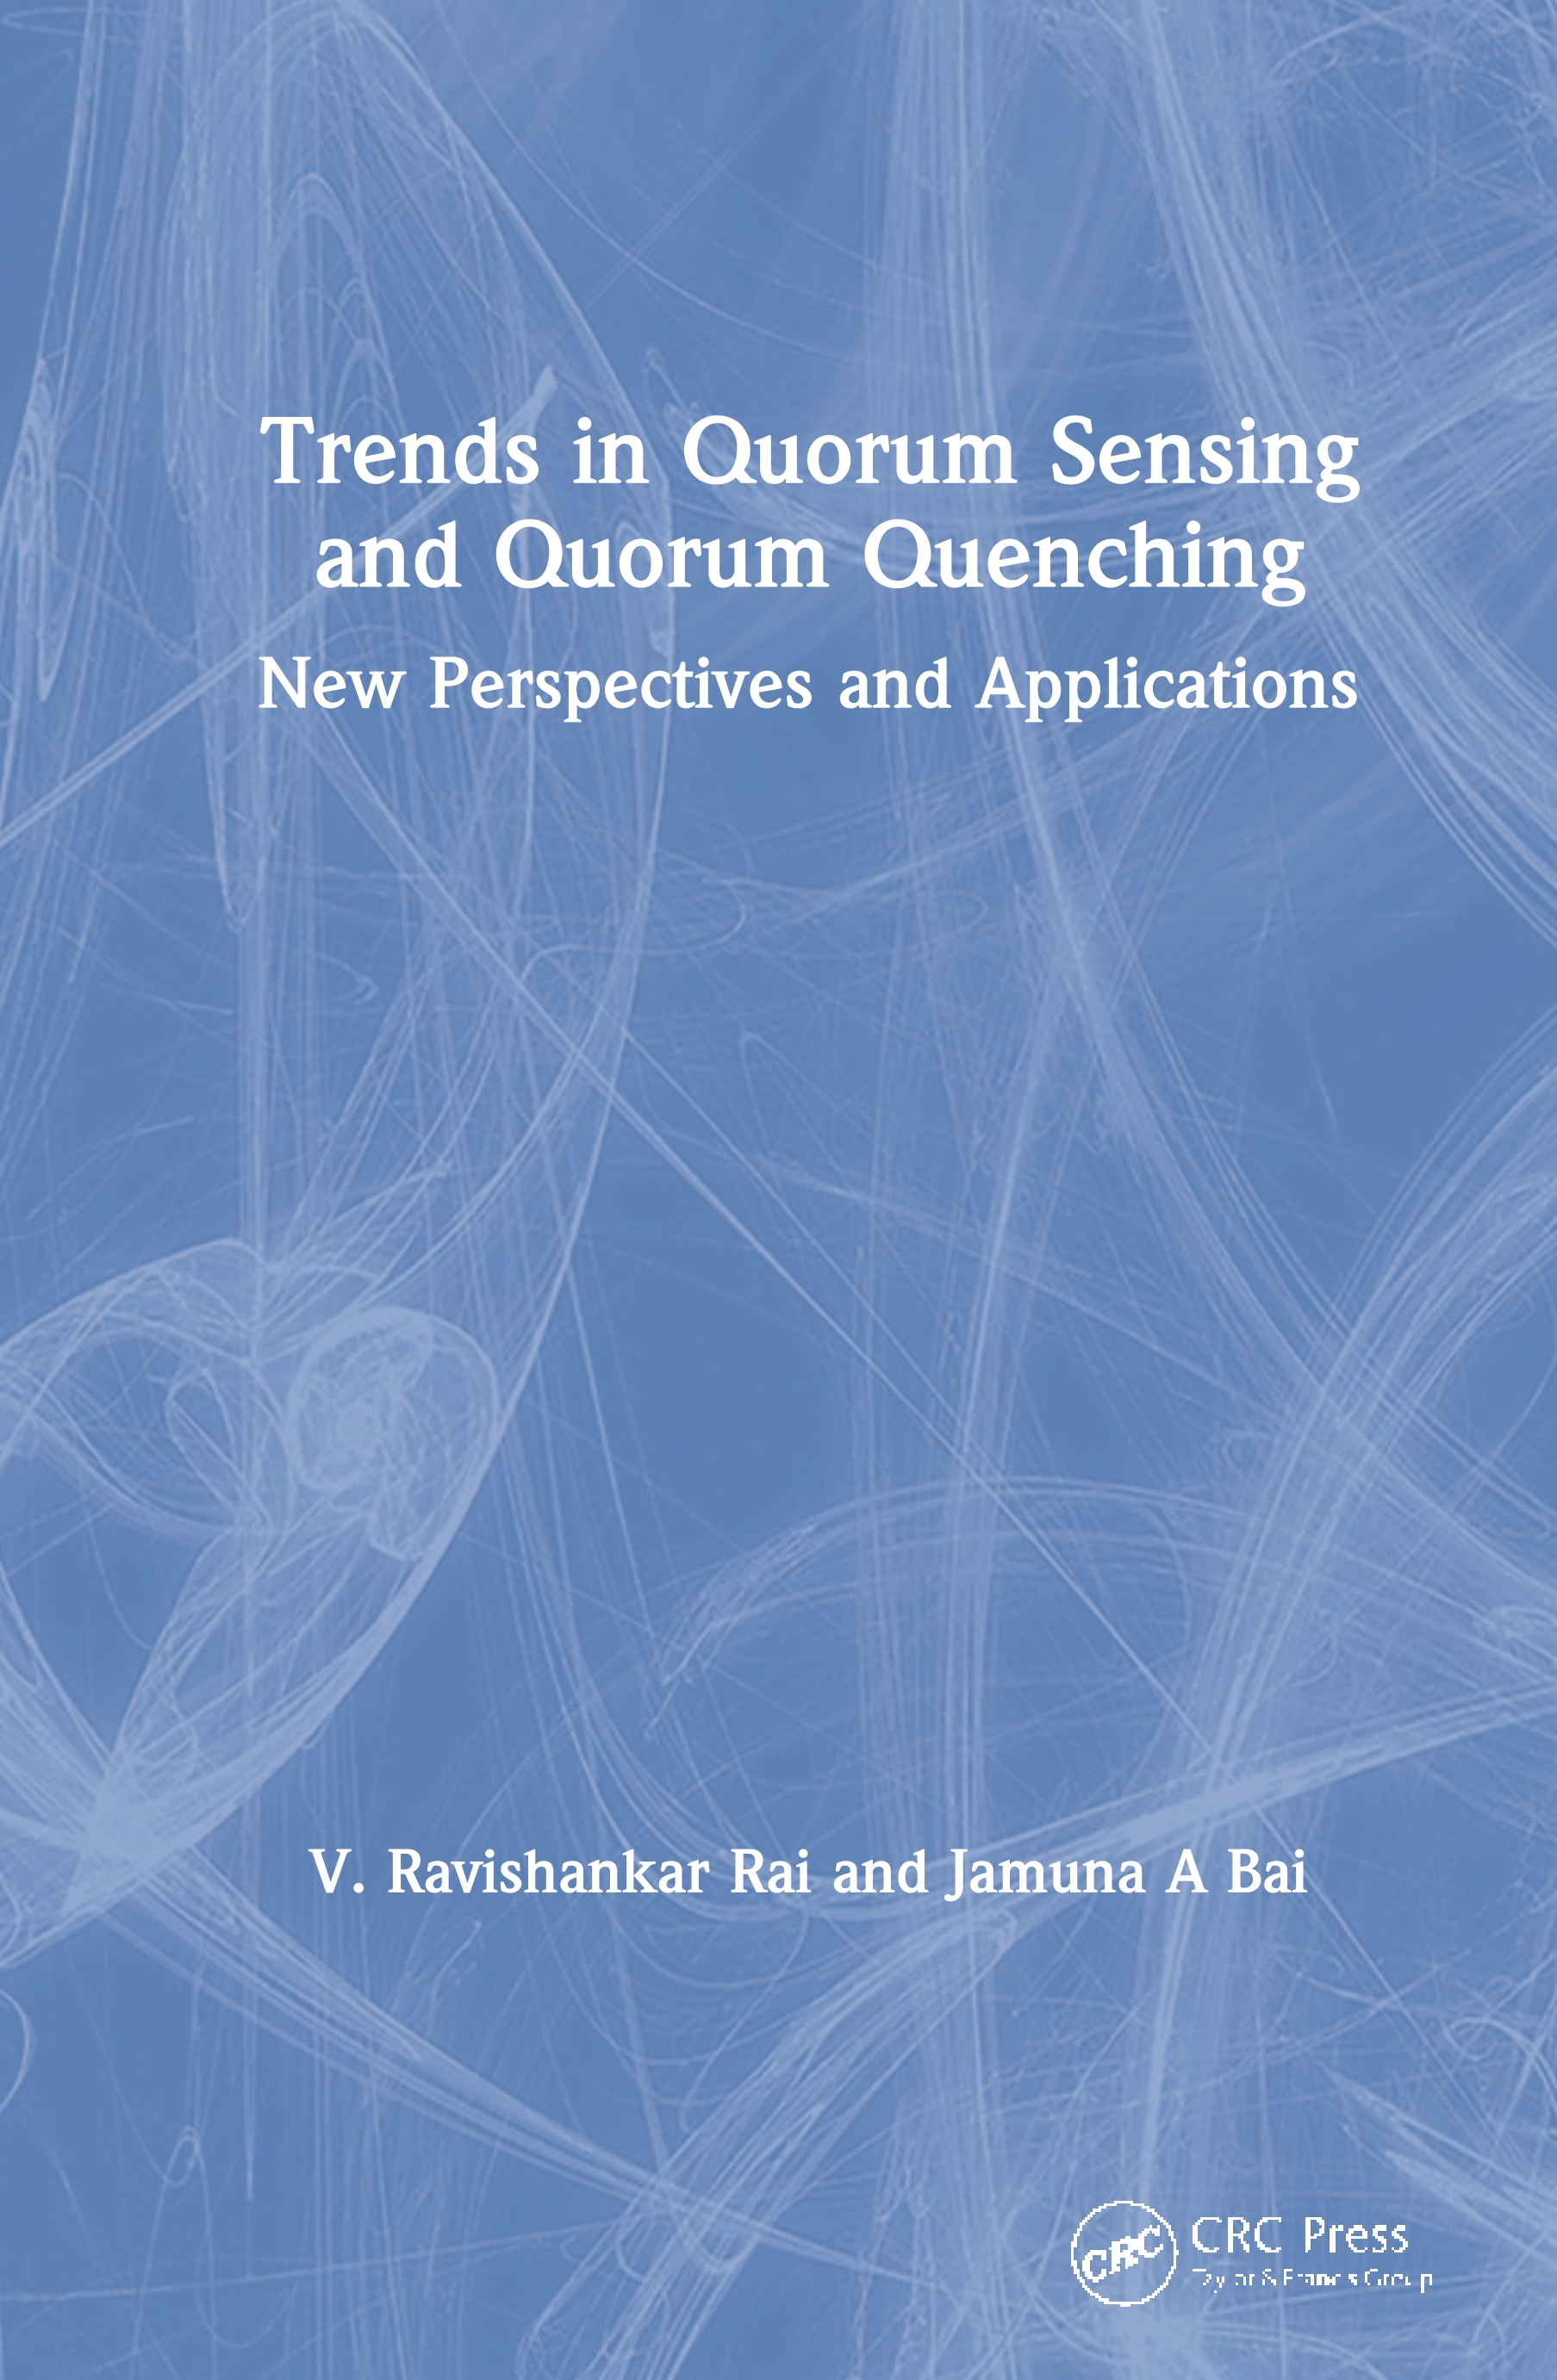 Trends in Quorum Sensing and Quorum Quenching: New Perspectives and Applications book cover